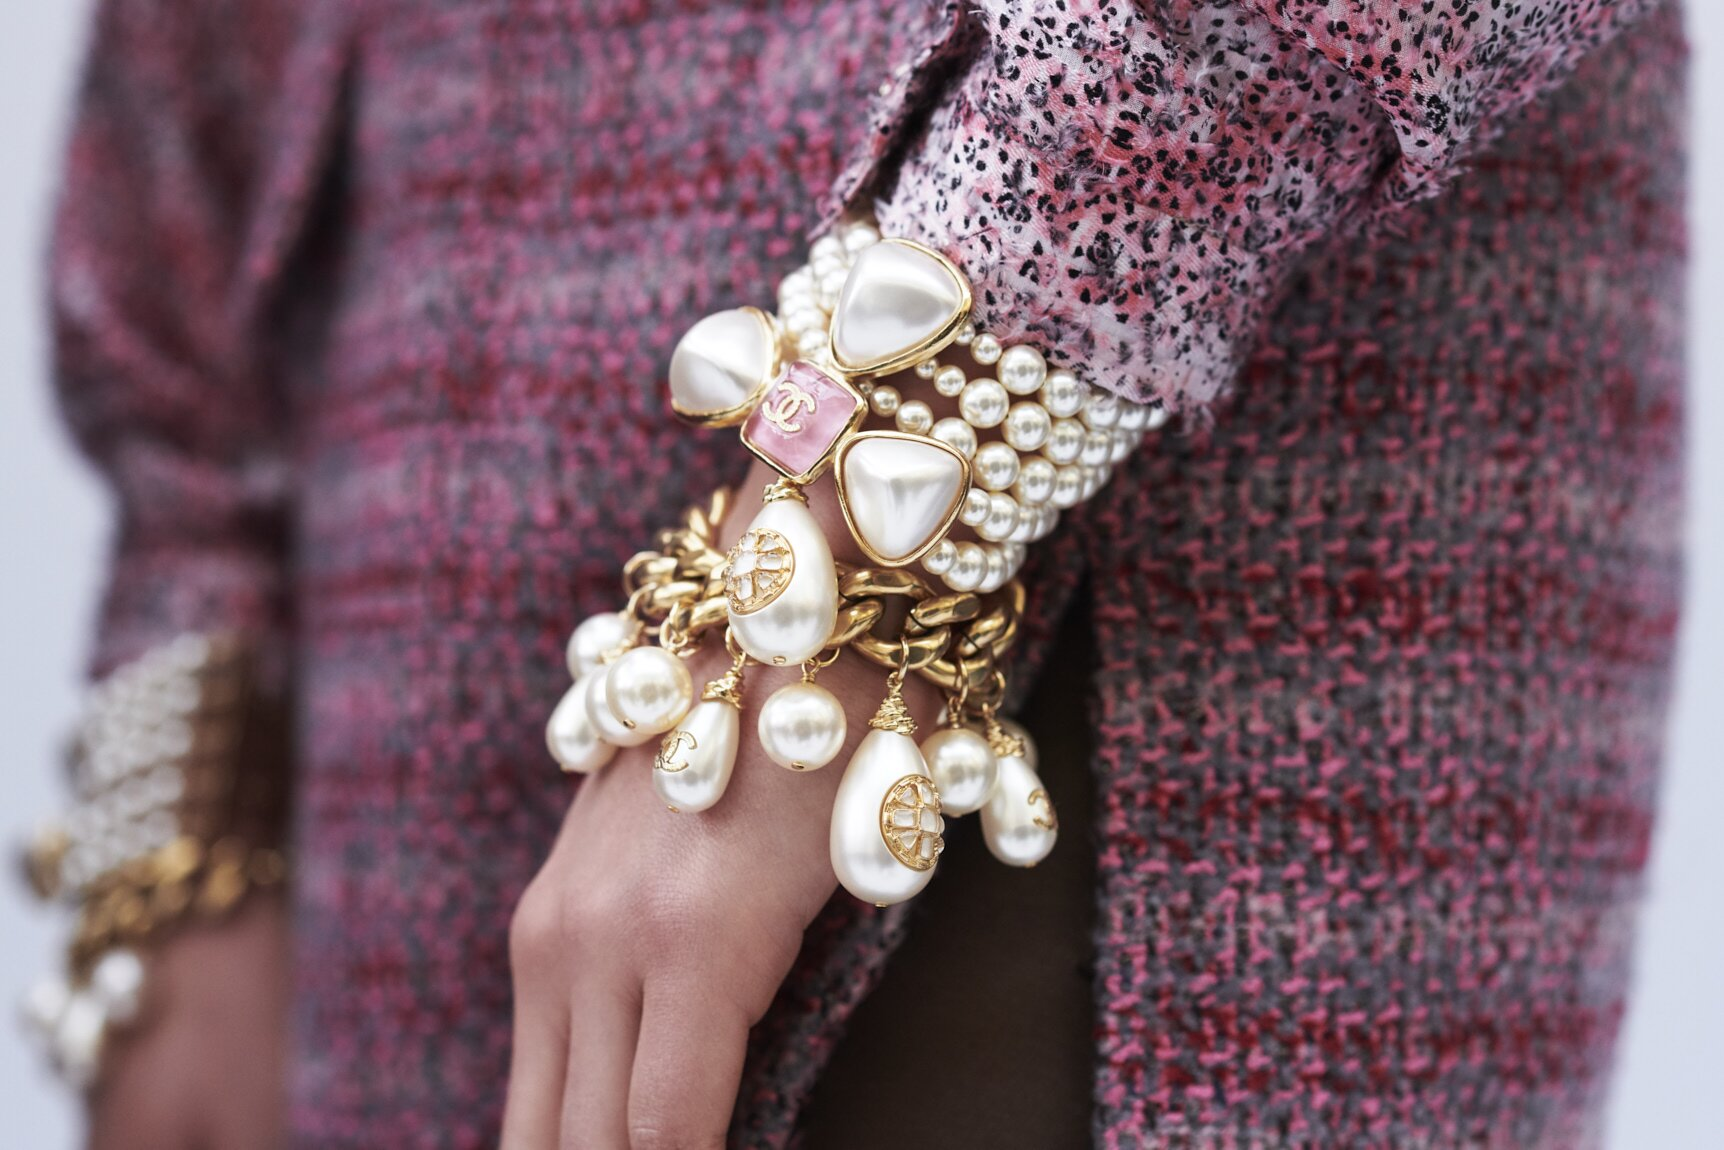 Chanel Detail Jewelry 2020 2021